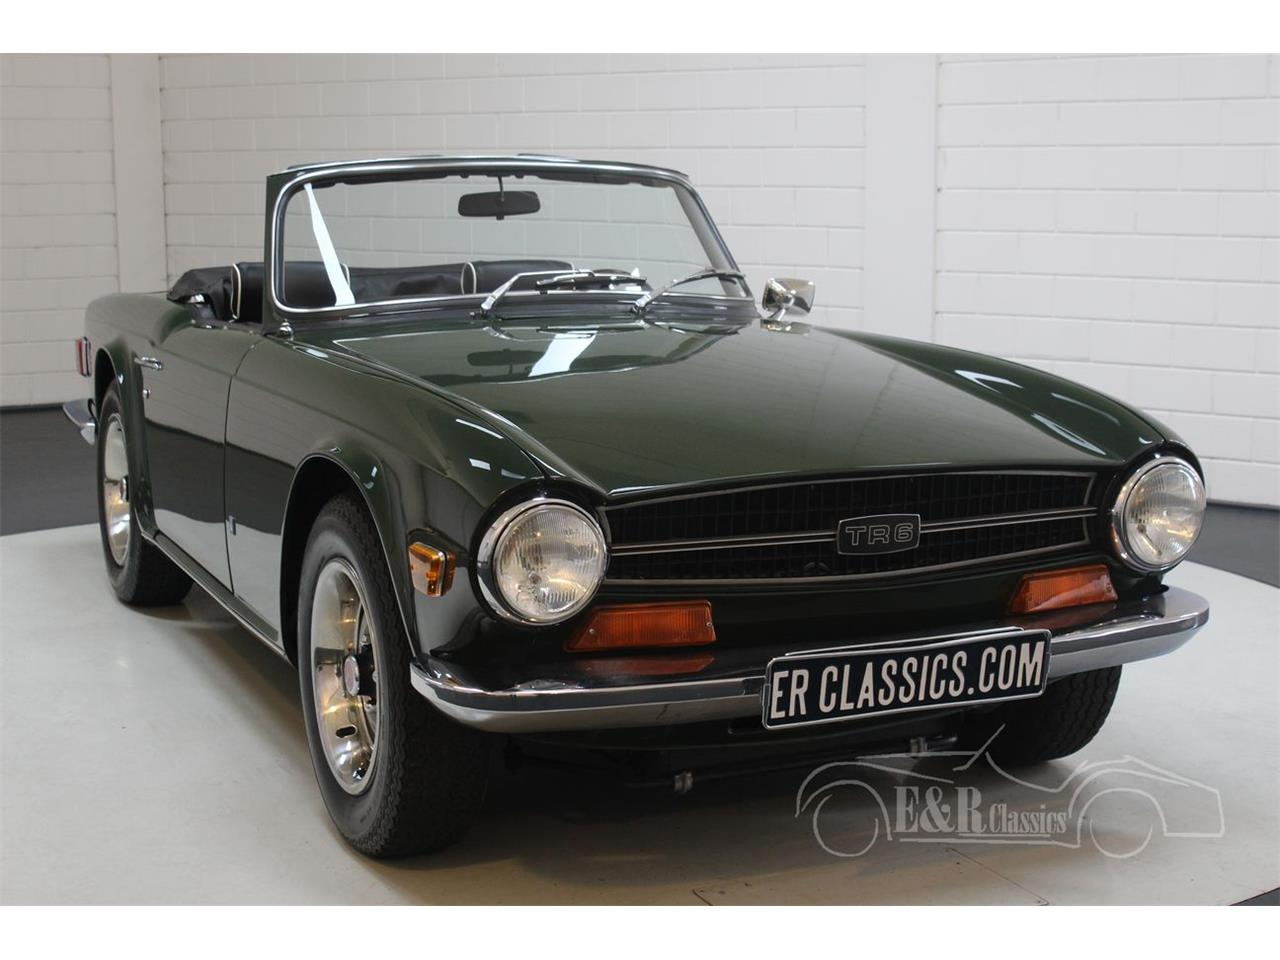 Large Picture of 1969 TR6 located in Waalwijk Noord Brabant - $33,700.00 Offered by E & R Classics - PWOE